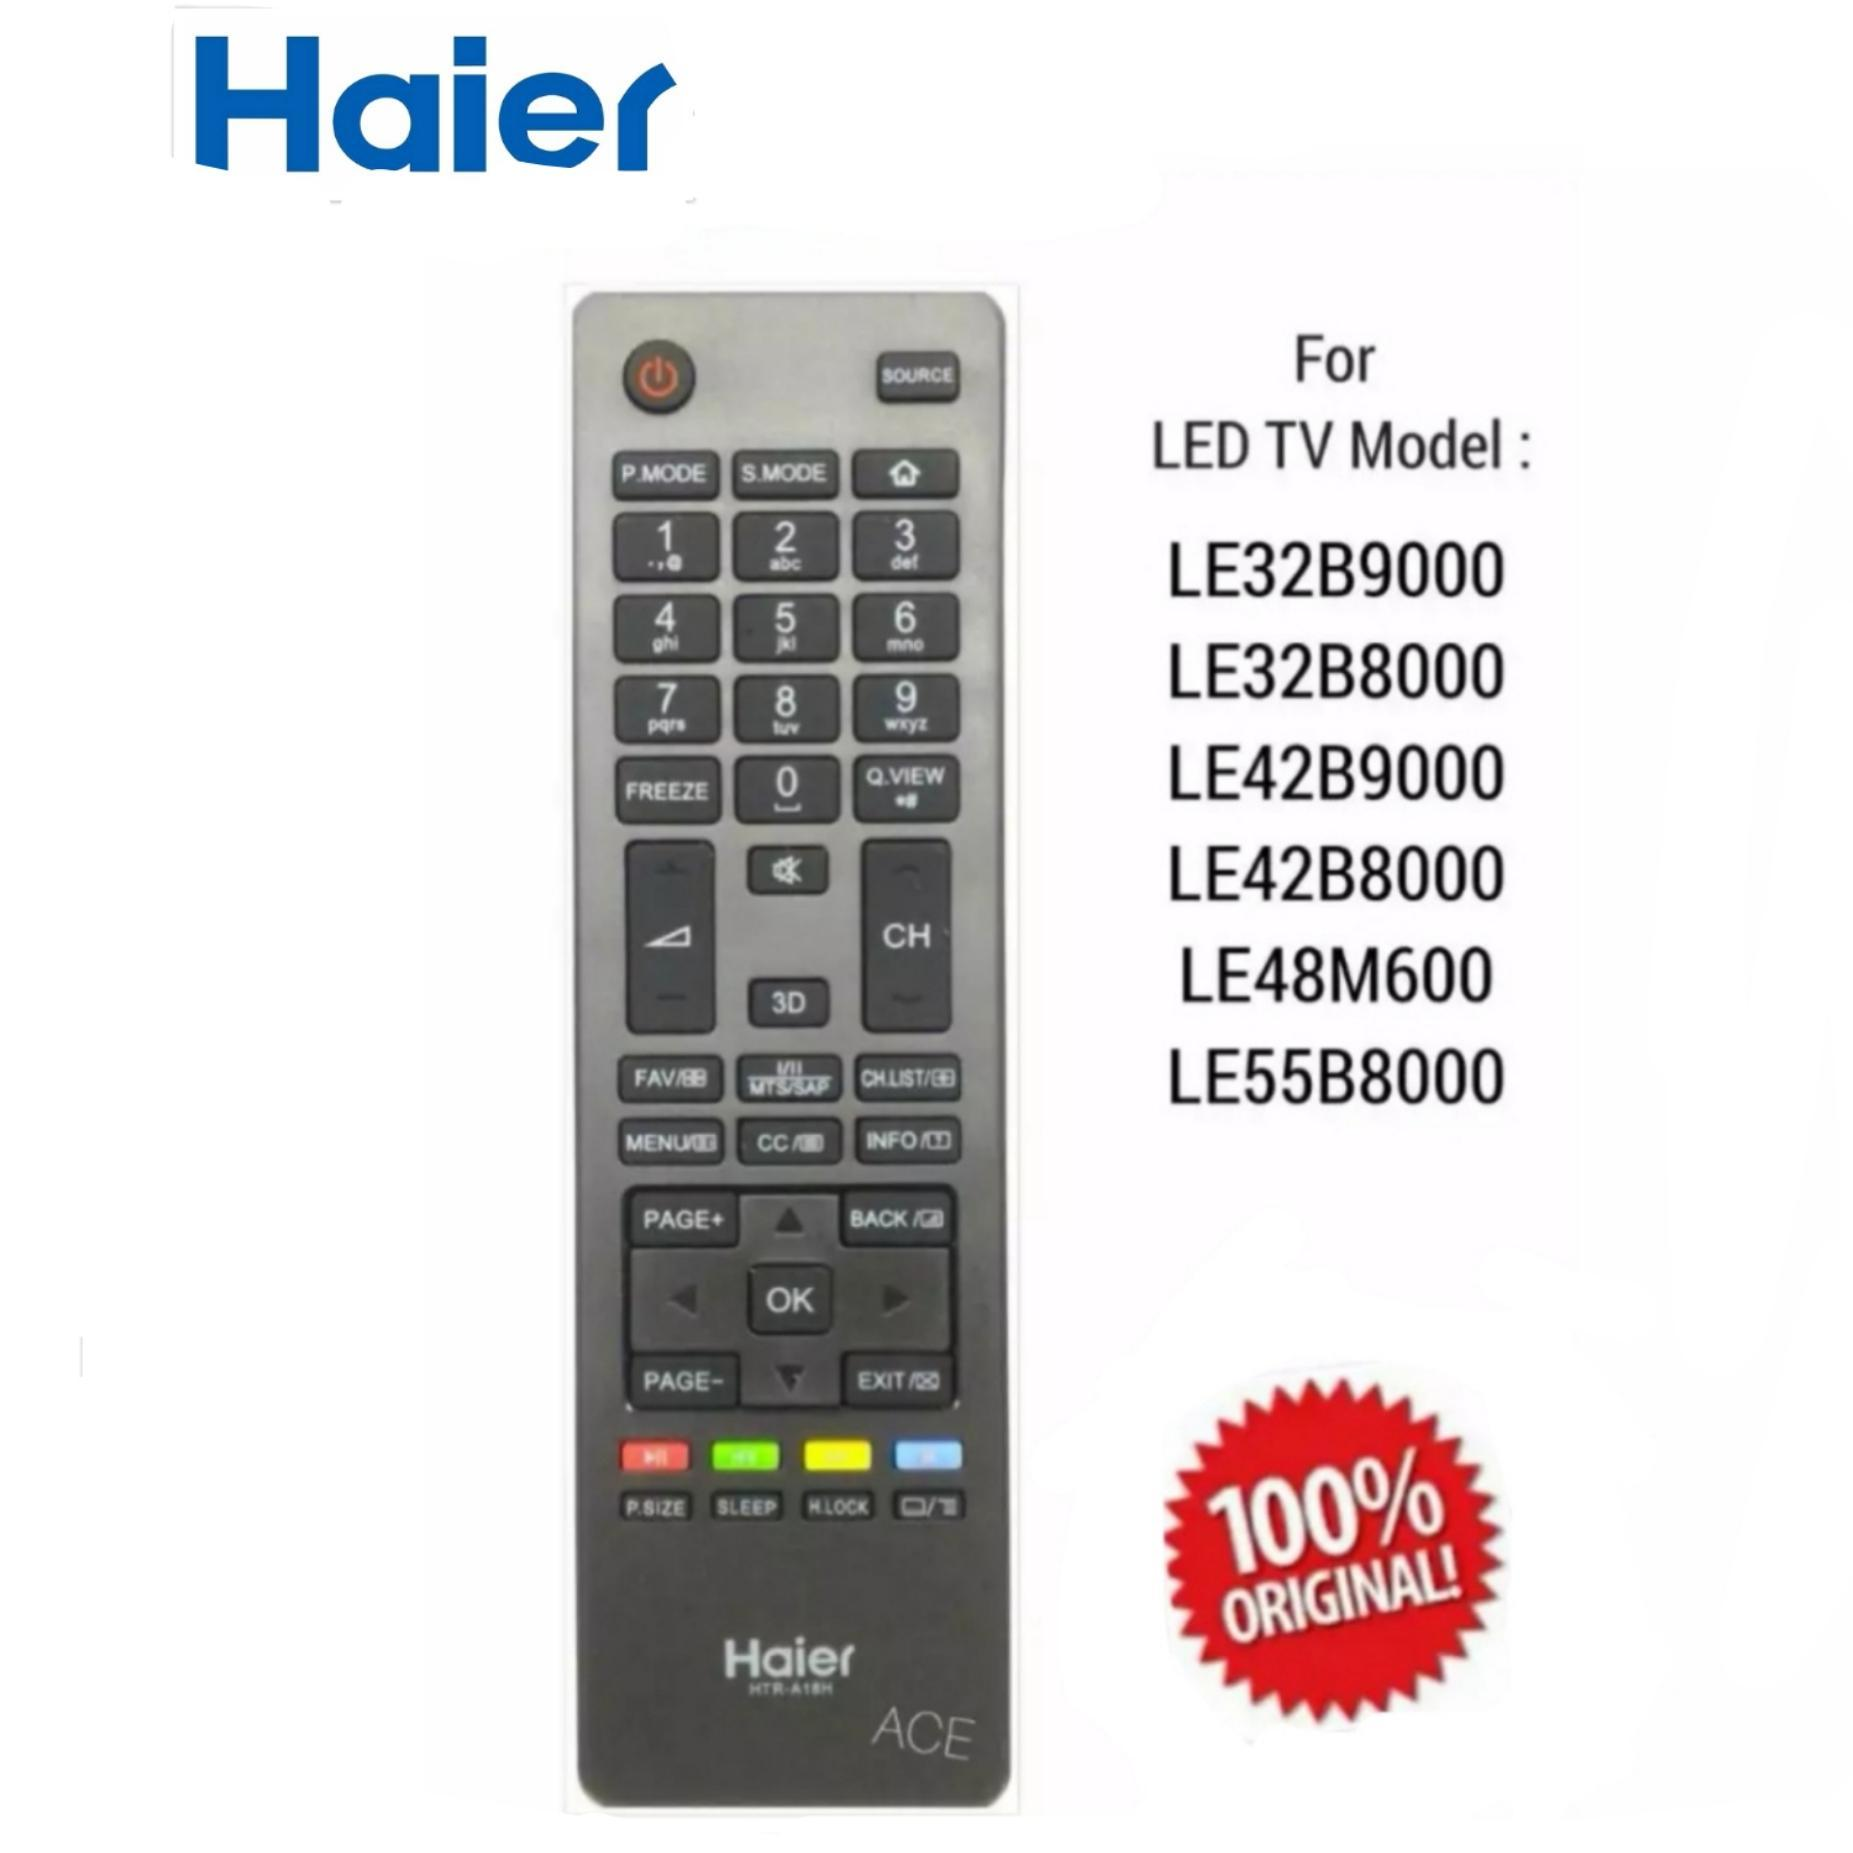 Hair Universal Remote For LED & LCD TV